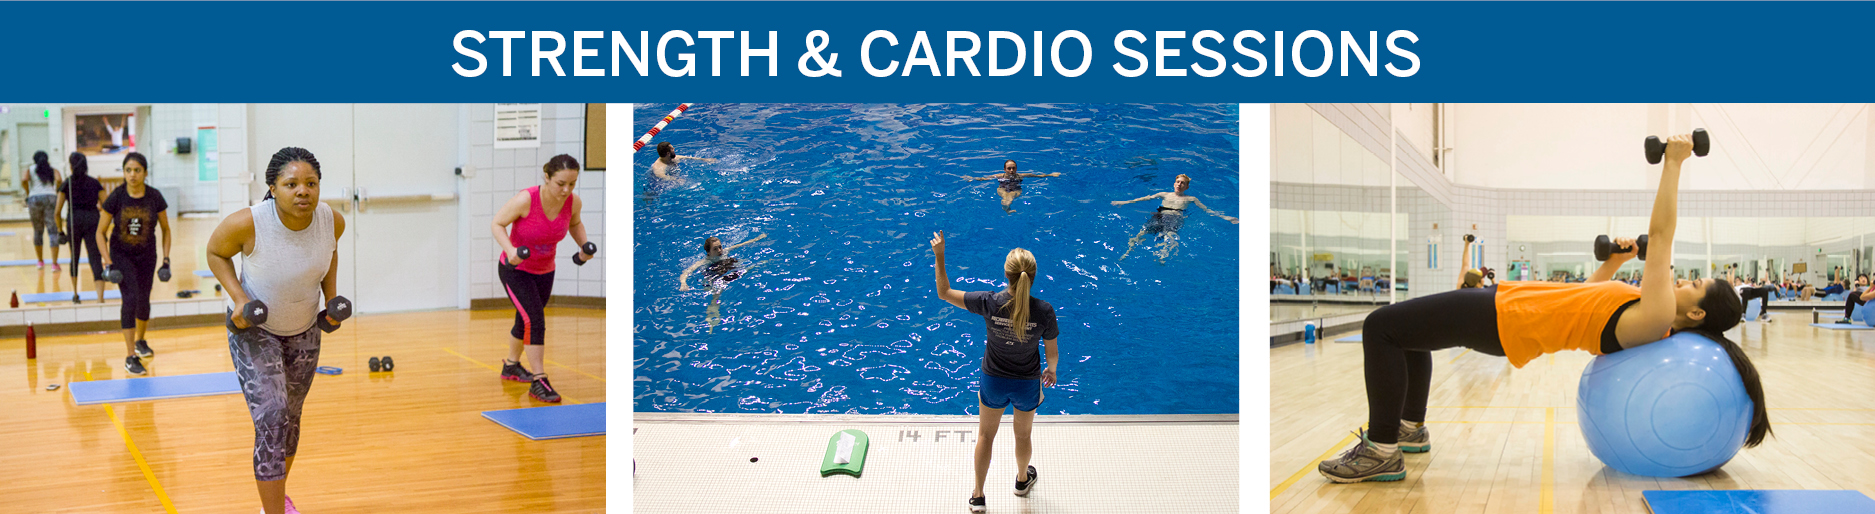 Strength and Cardio Sessions